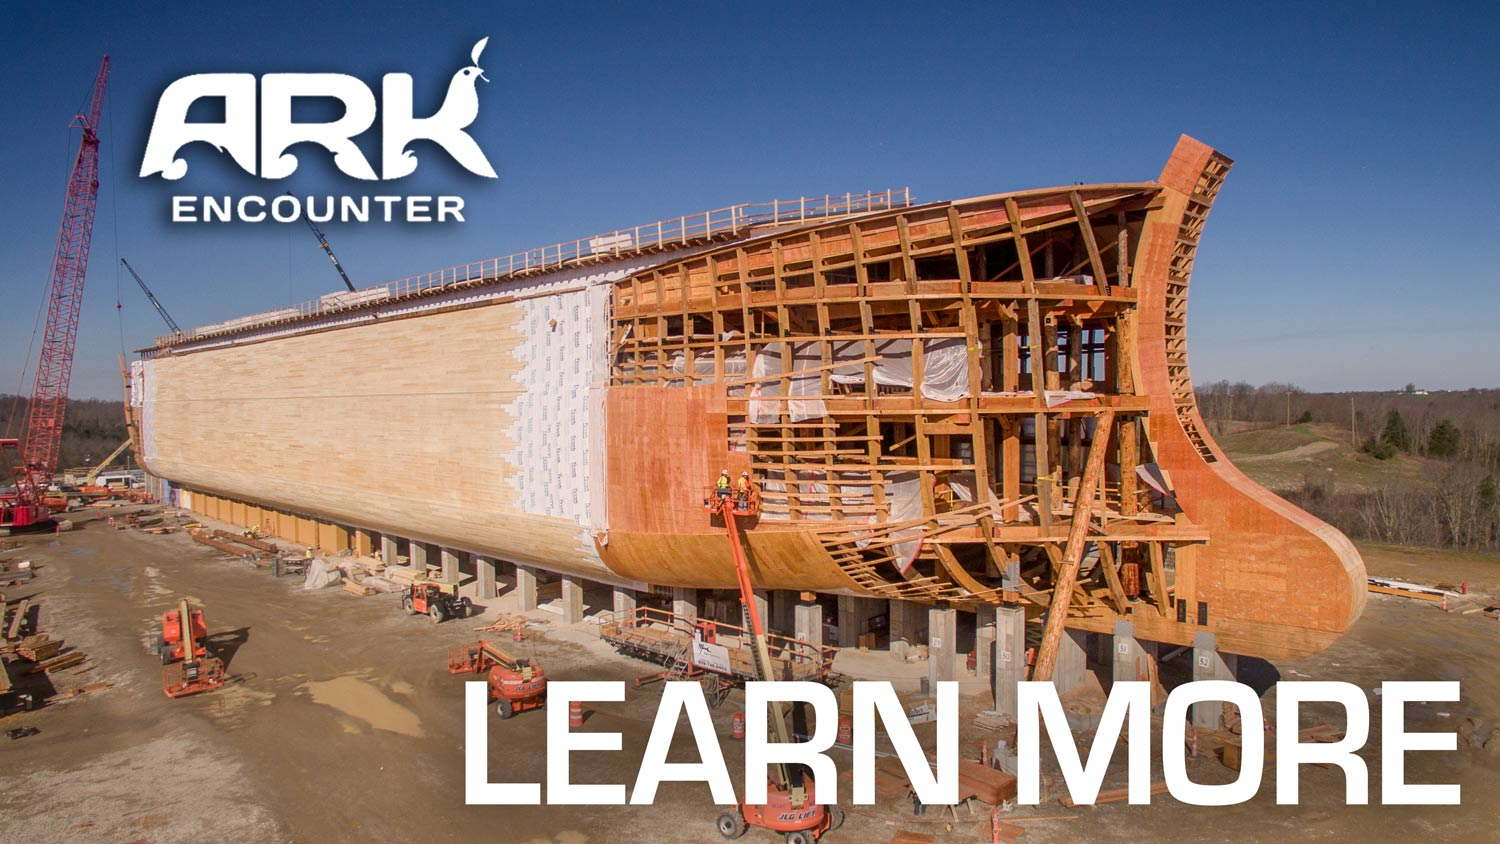 Learn More About the Ark